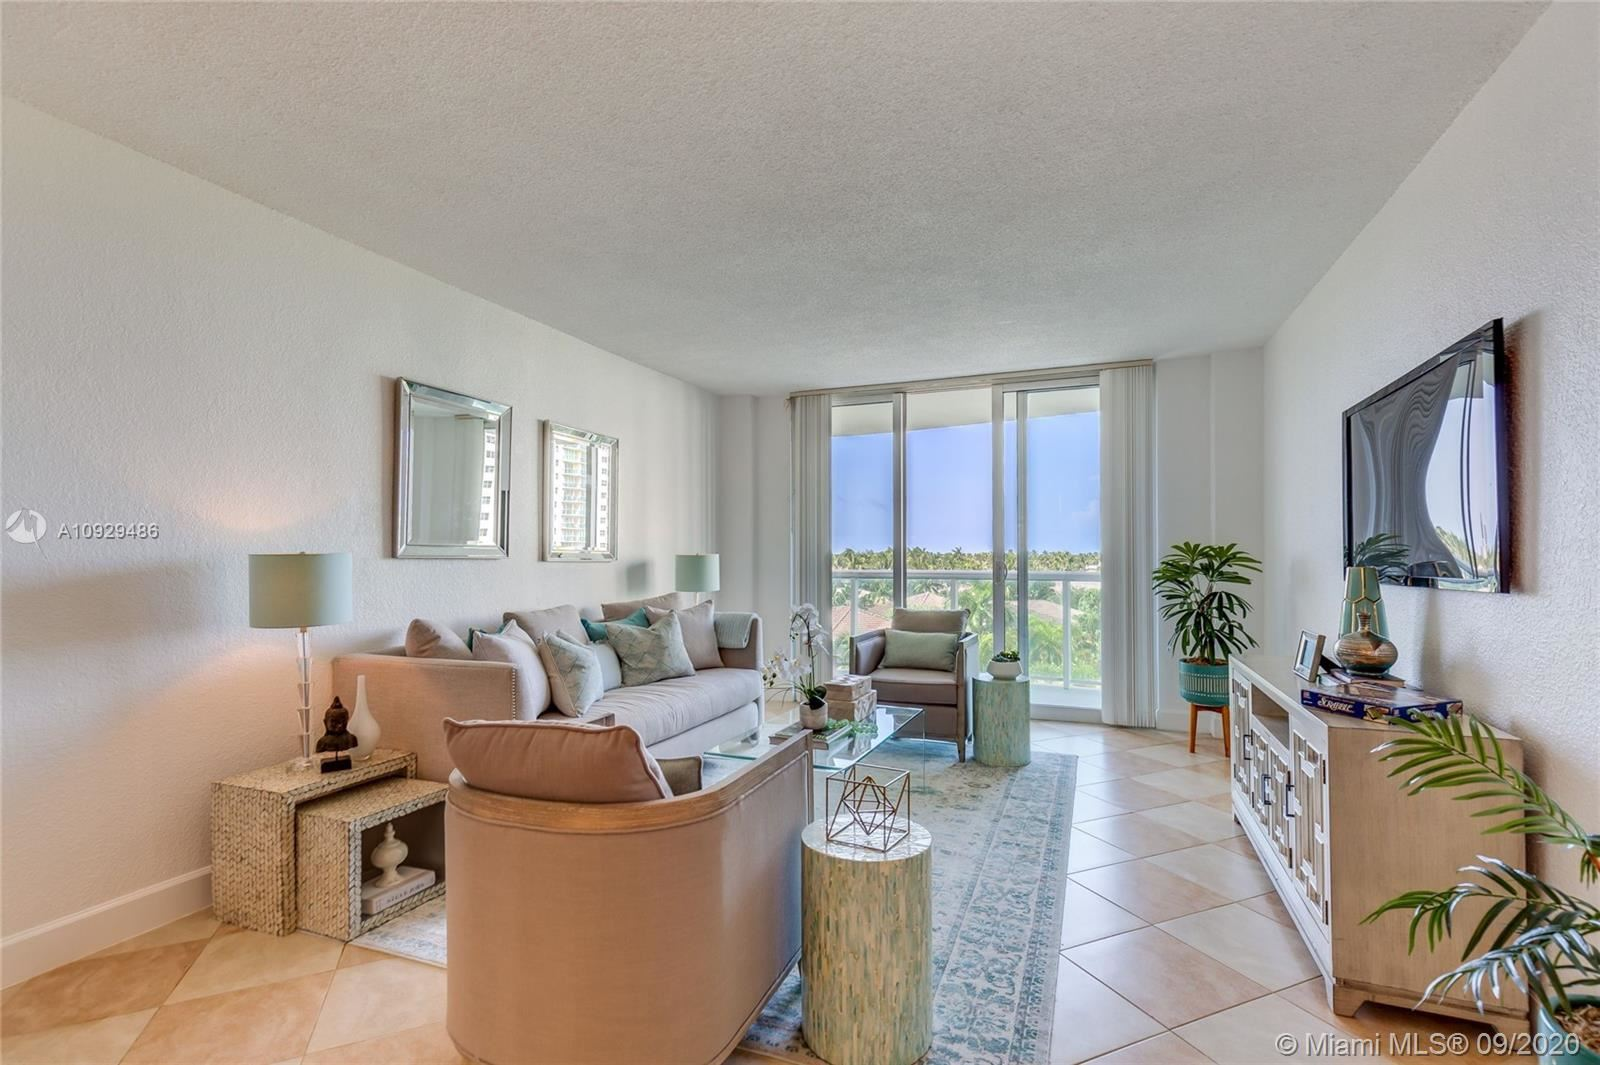 19380 Collins Ave #518, Sunny Isles, FL 33160 - #: A10929486